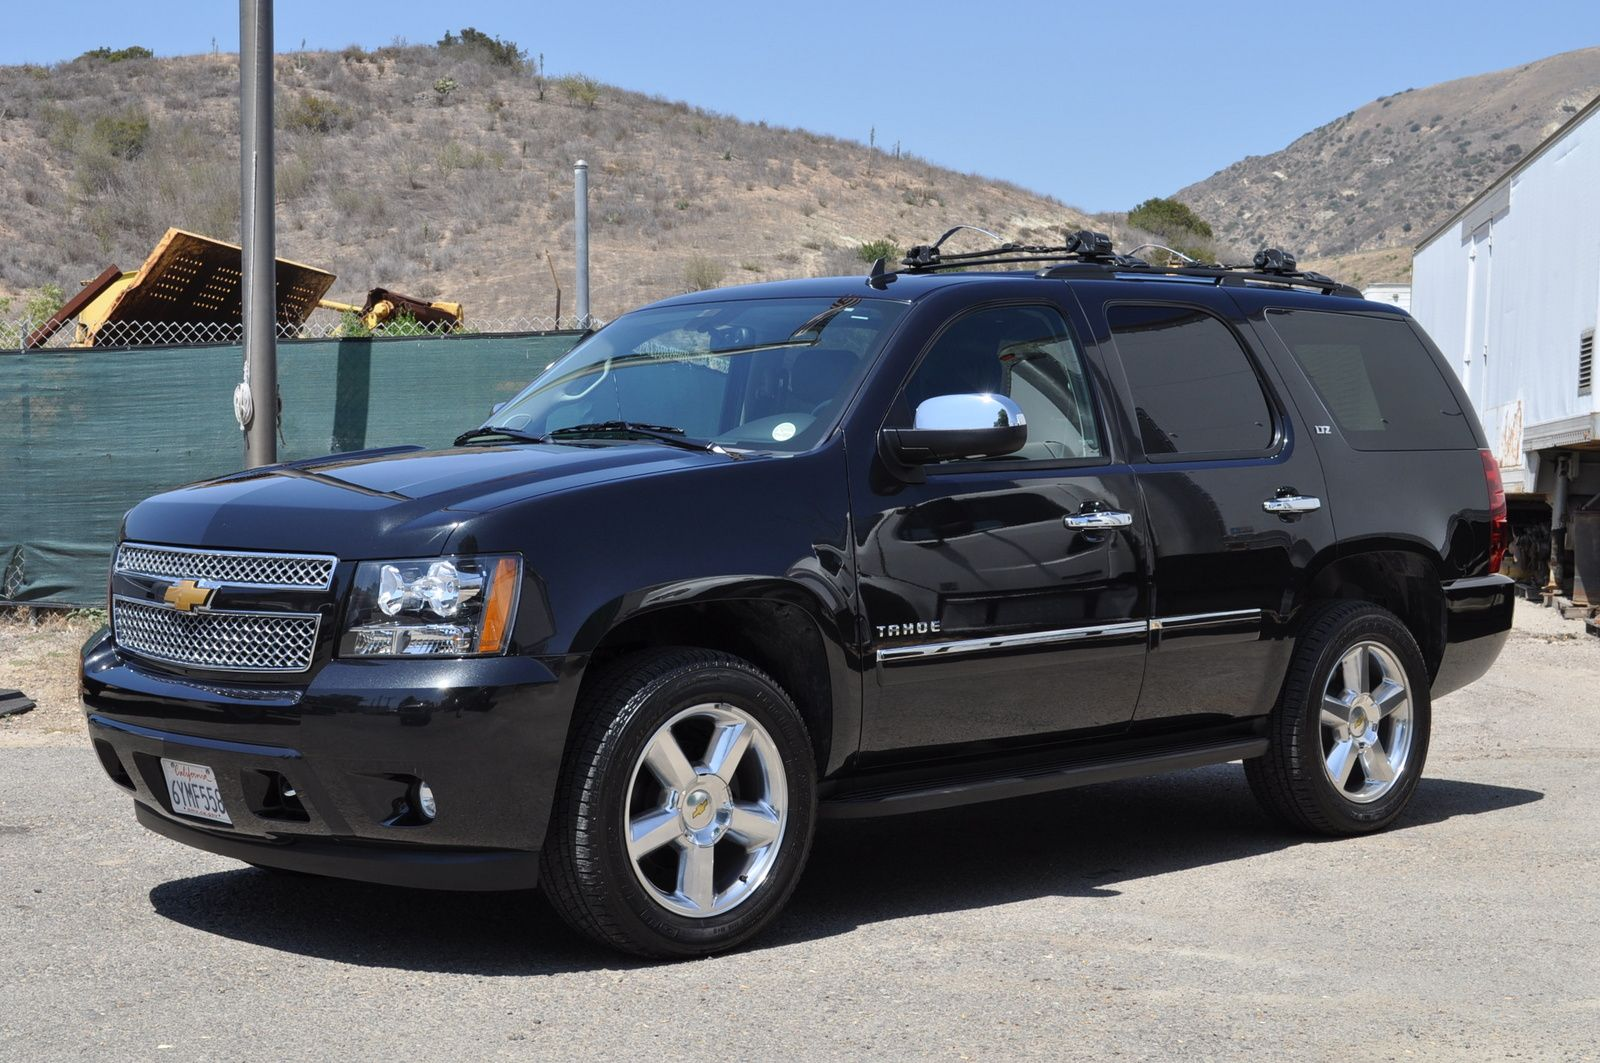 Love this car 2013 chevrolet tahoe ltz for improved interior with 2013 chevrolet tahoe ltz this